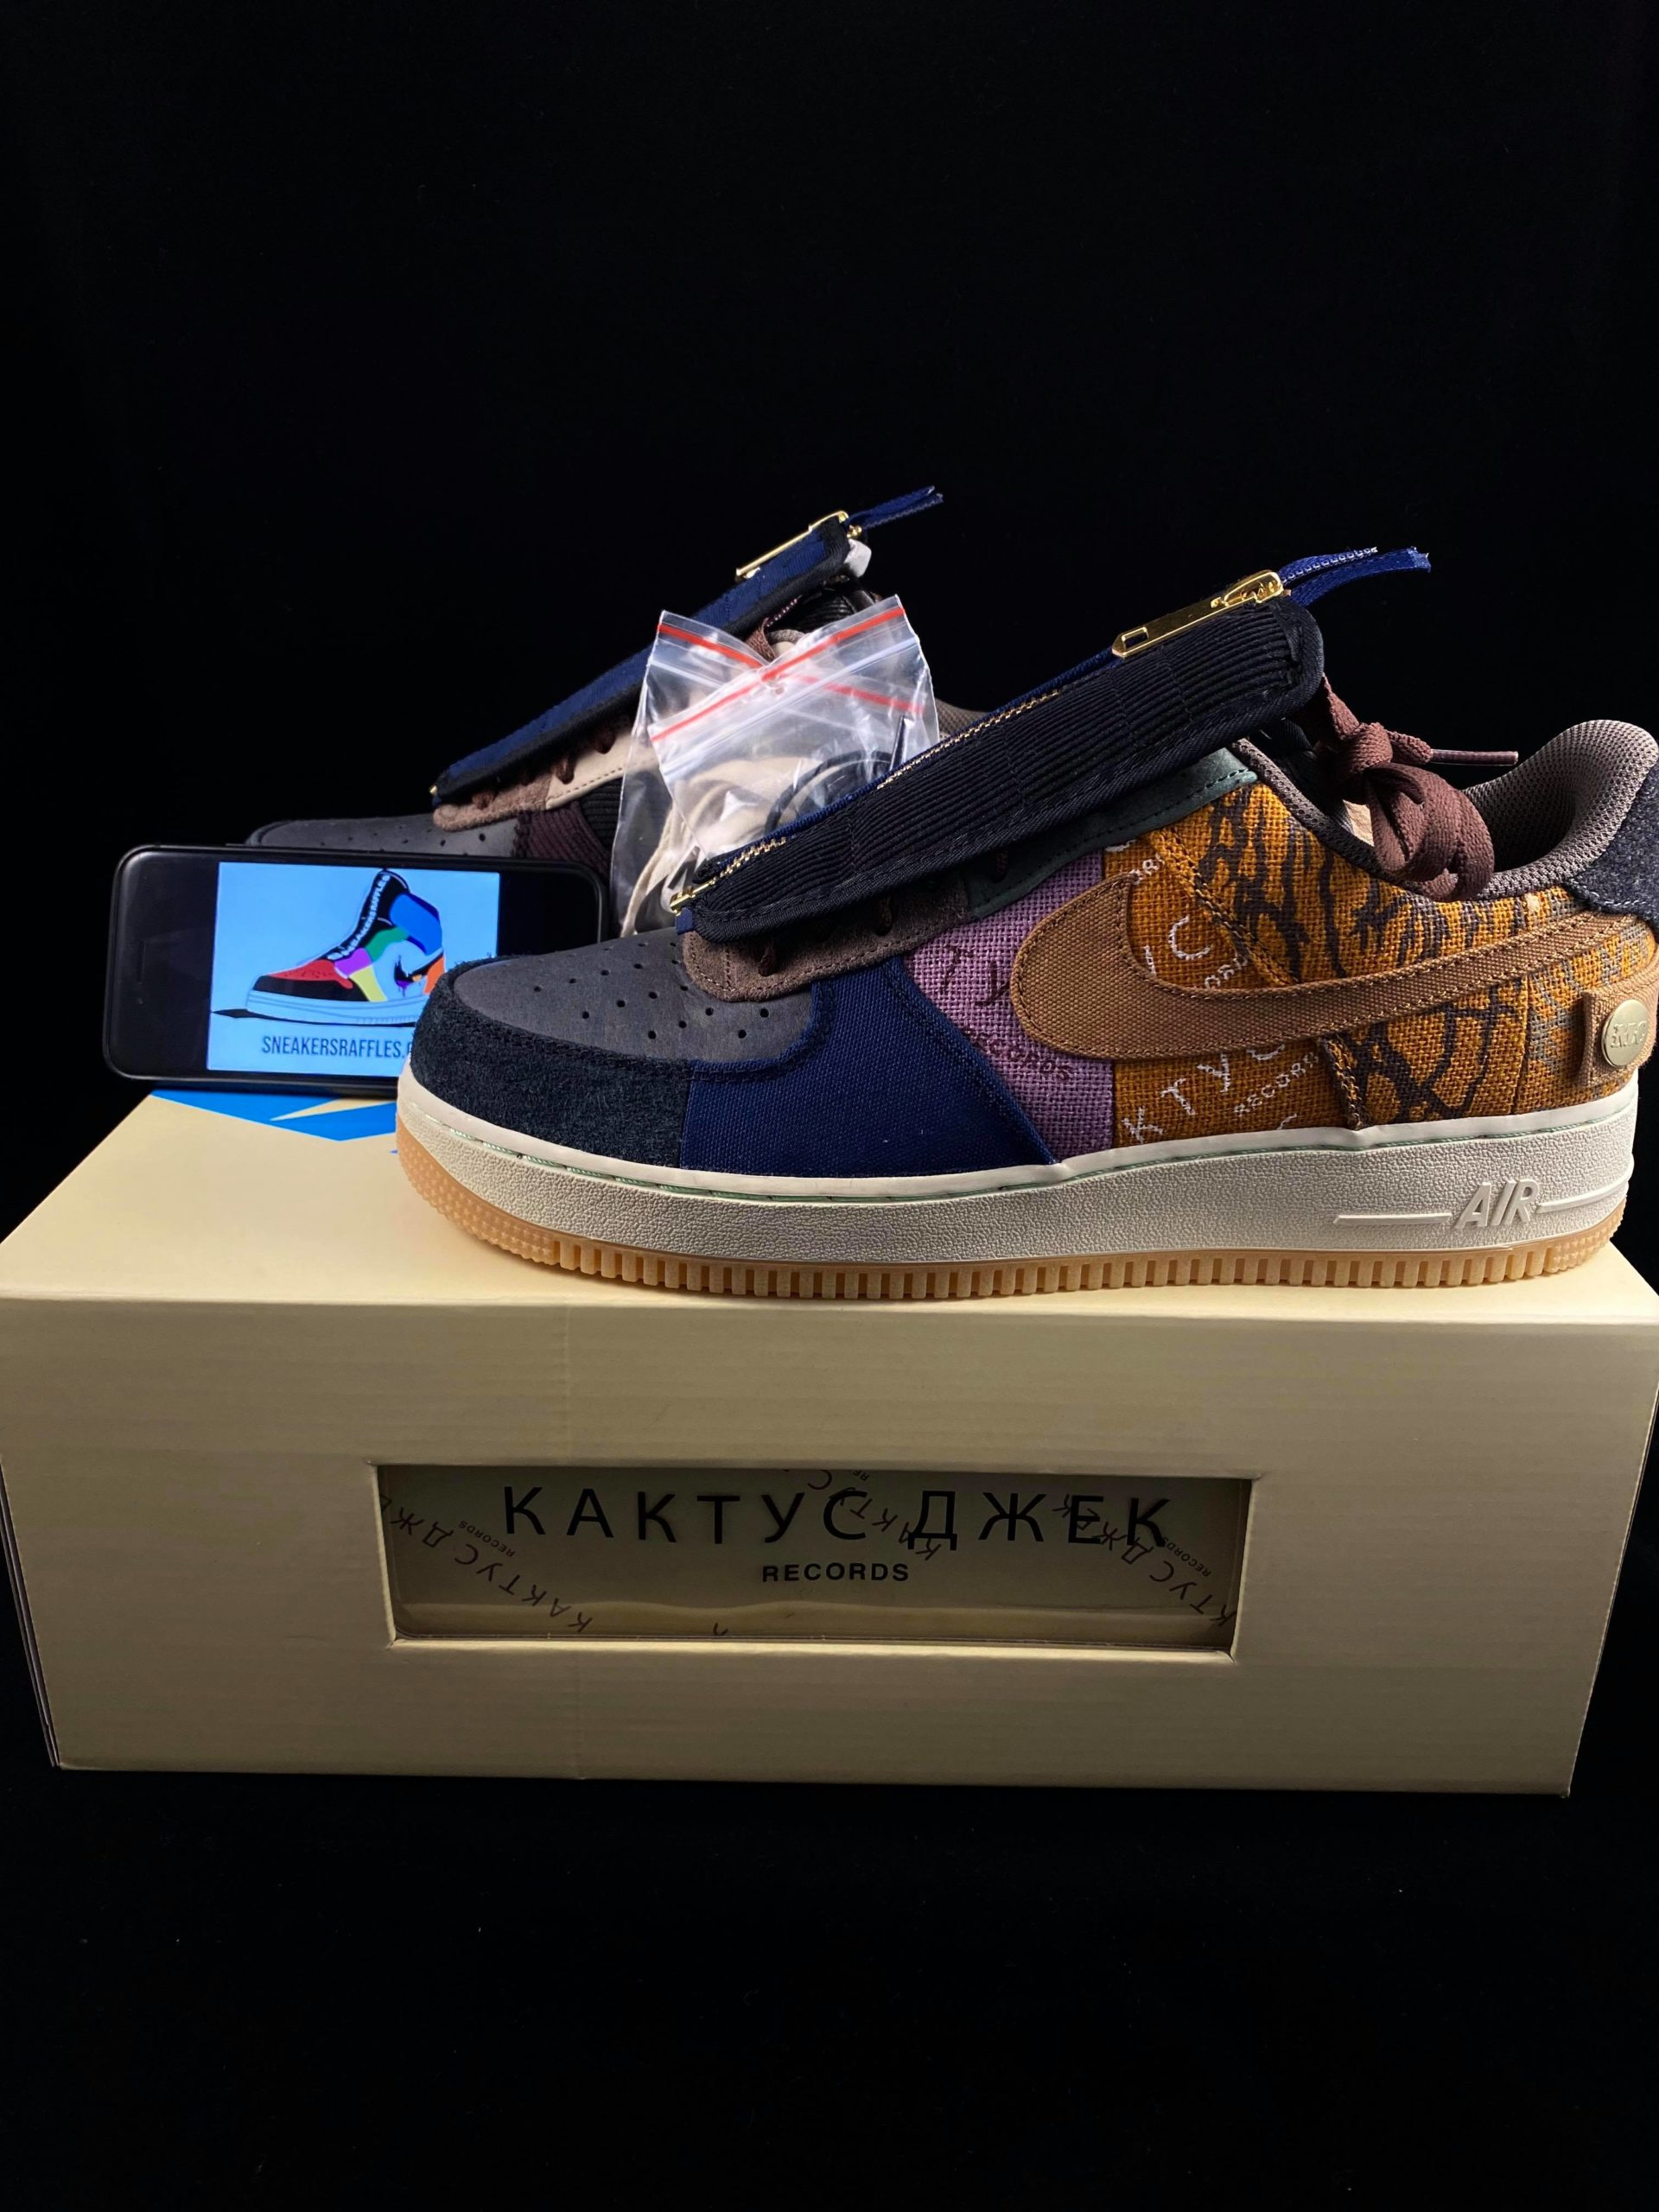 win nike travis scott af 1 sneakers competition shoe placed on box